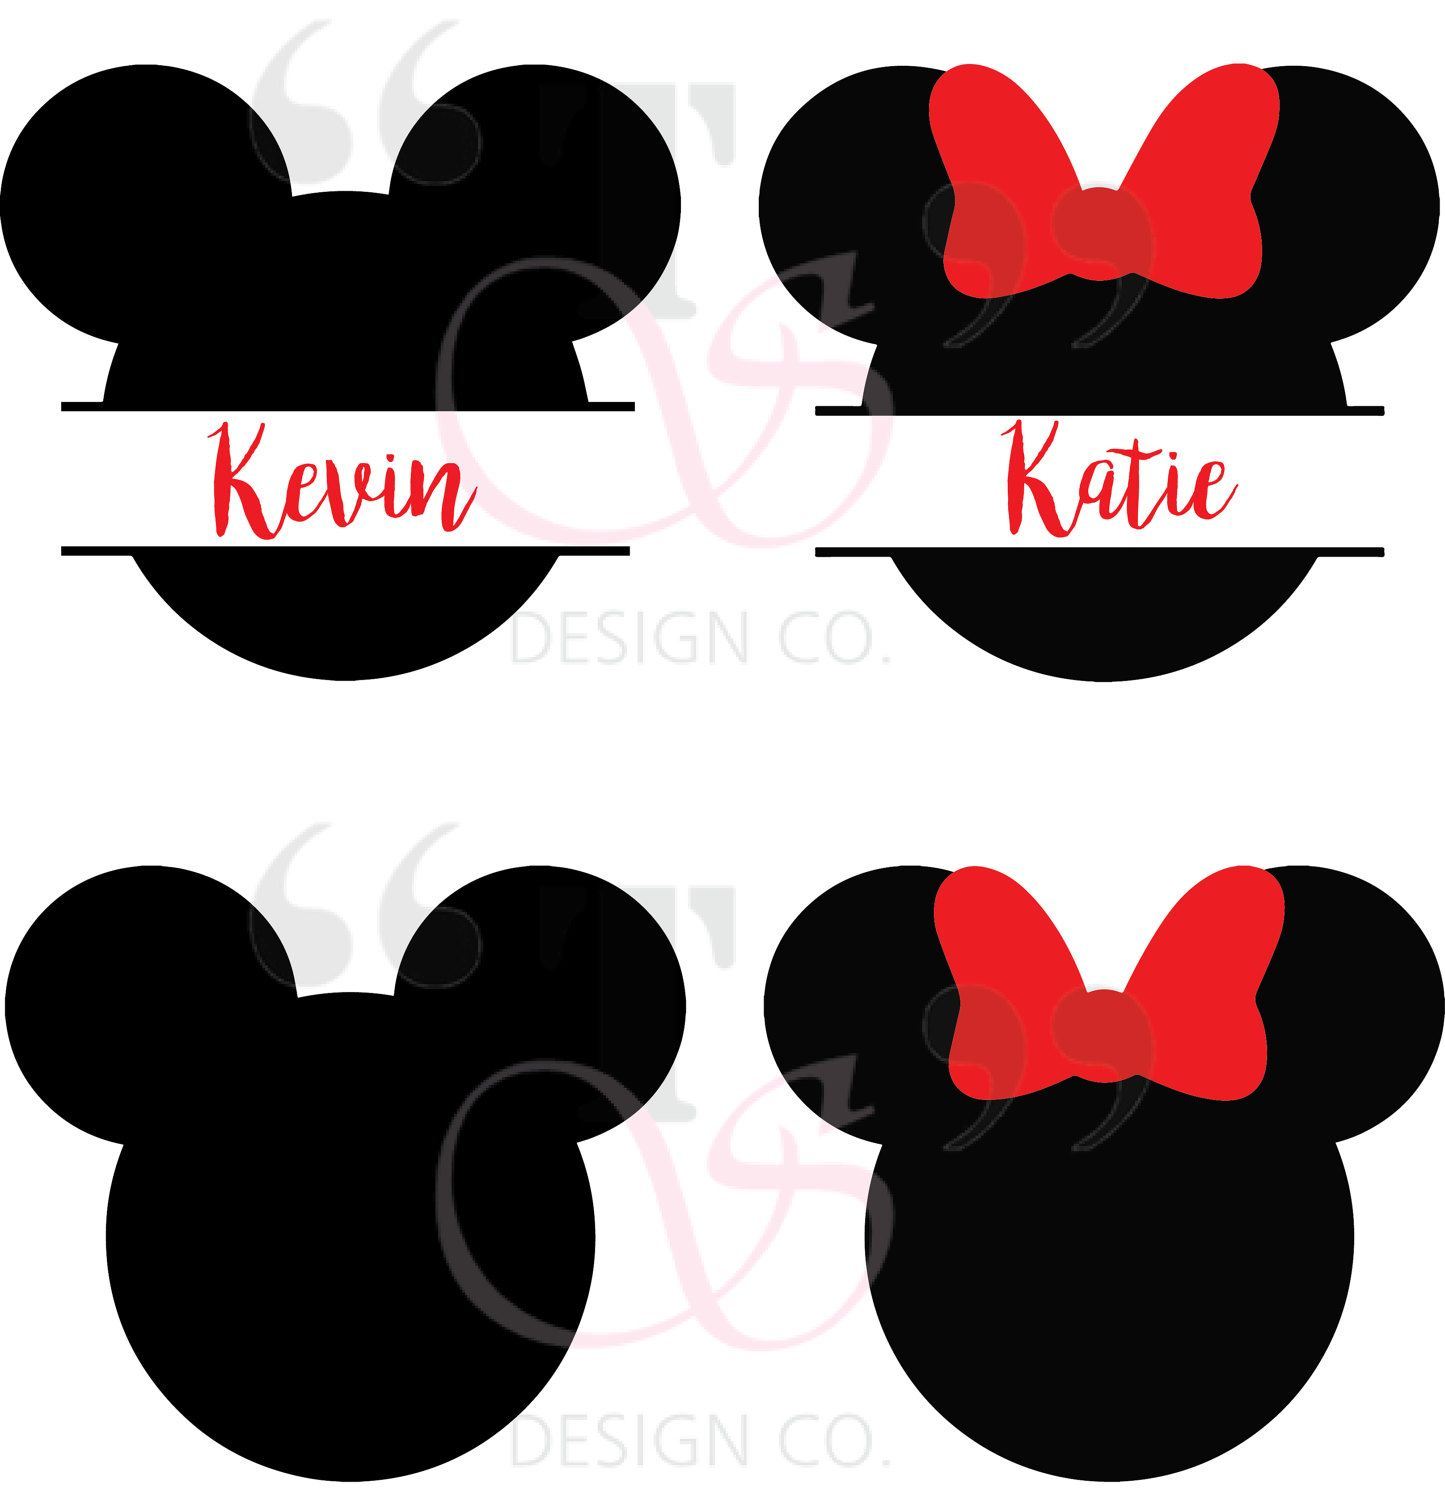 Disney Mickey Minnie svg file for Cricut, Silhouette, and similar